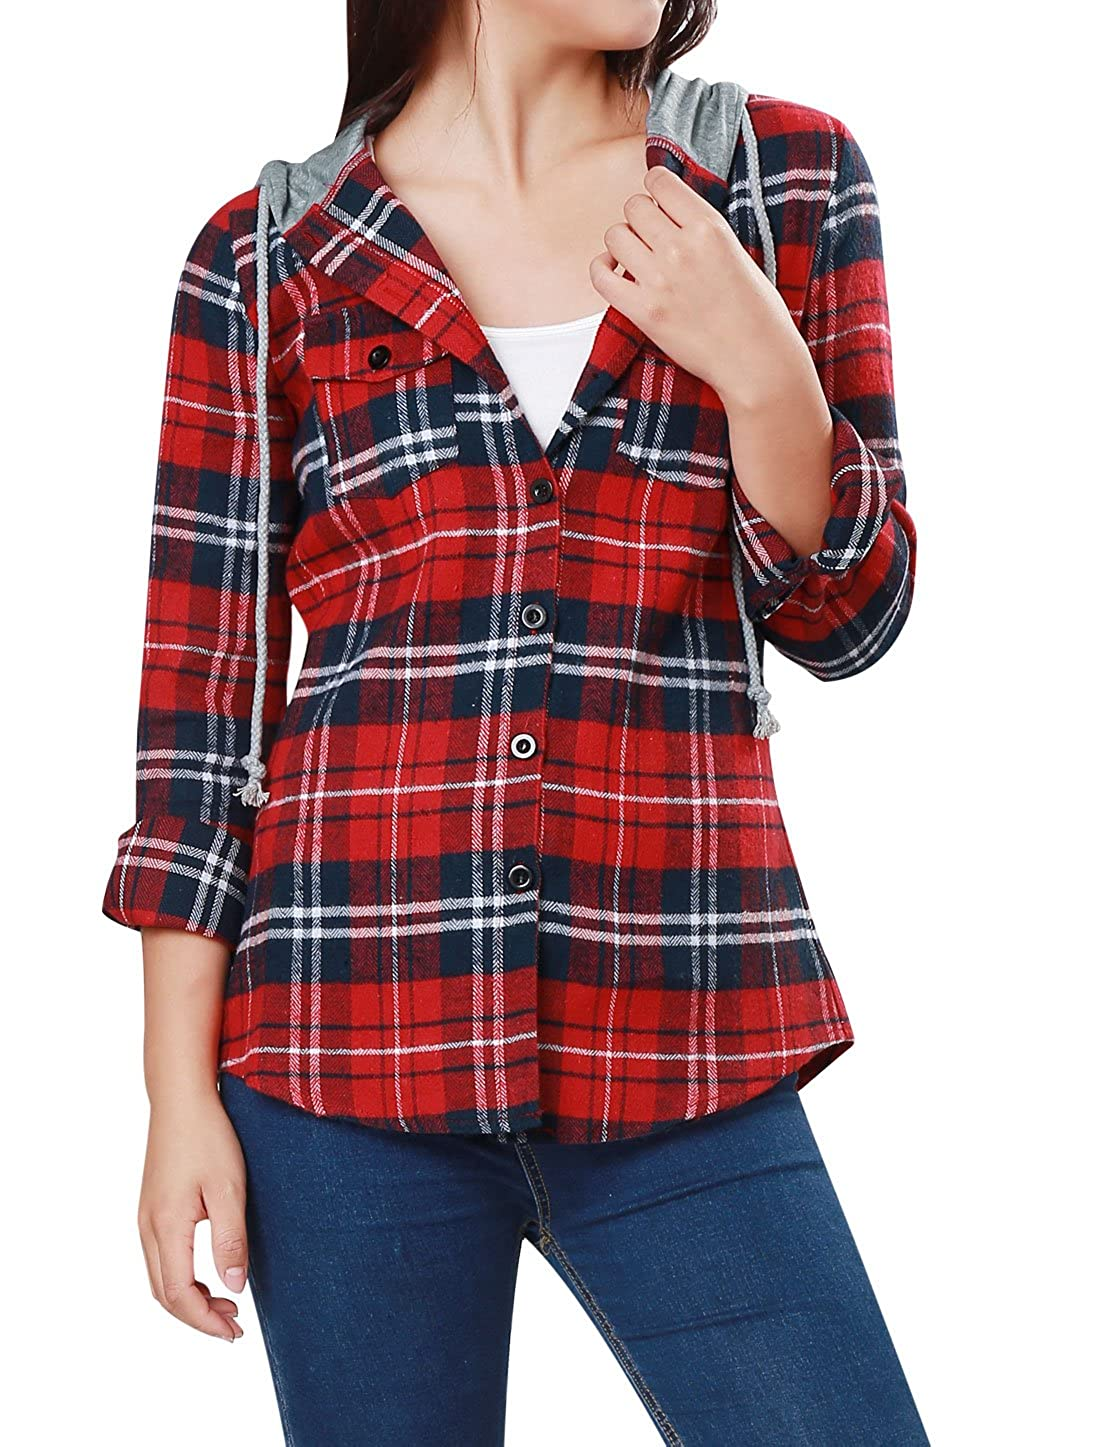 Women's Button Down Plaids Drawstring Hoodie Shirt Allegra K s18040800it0029